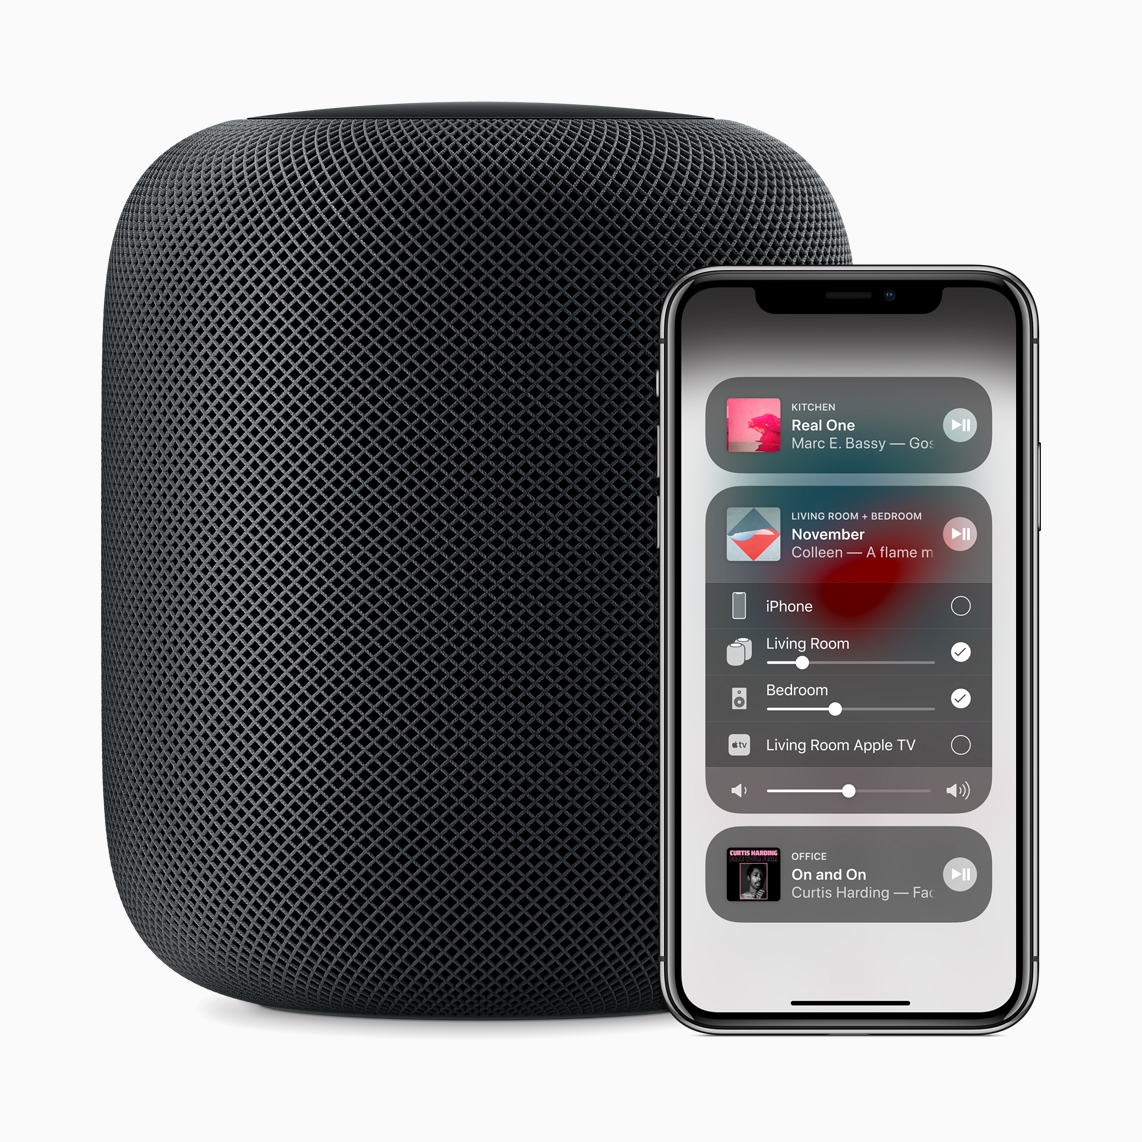 Apple HomePod coming to Canada on June 18th – TheCanadianTechie